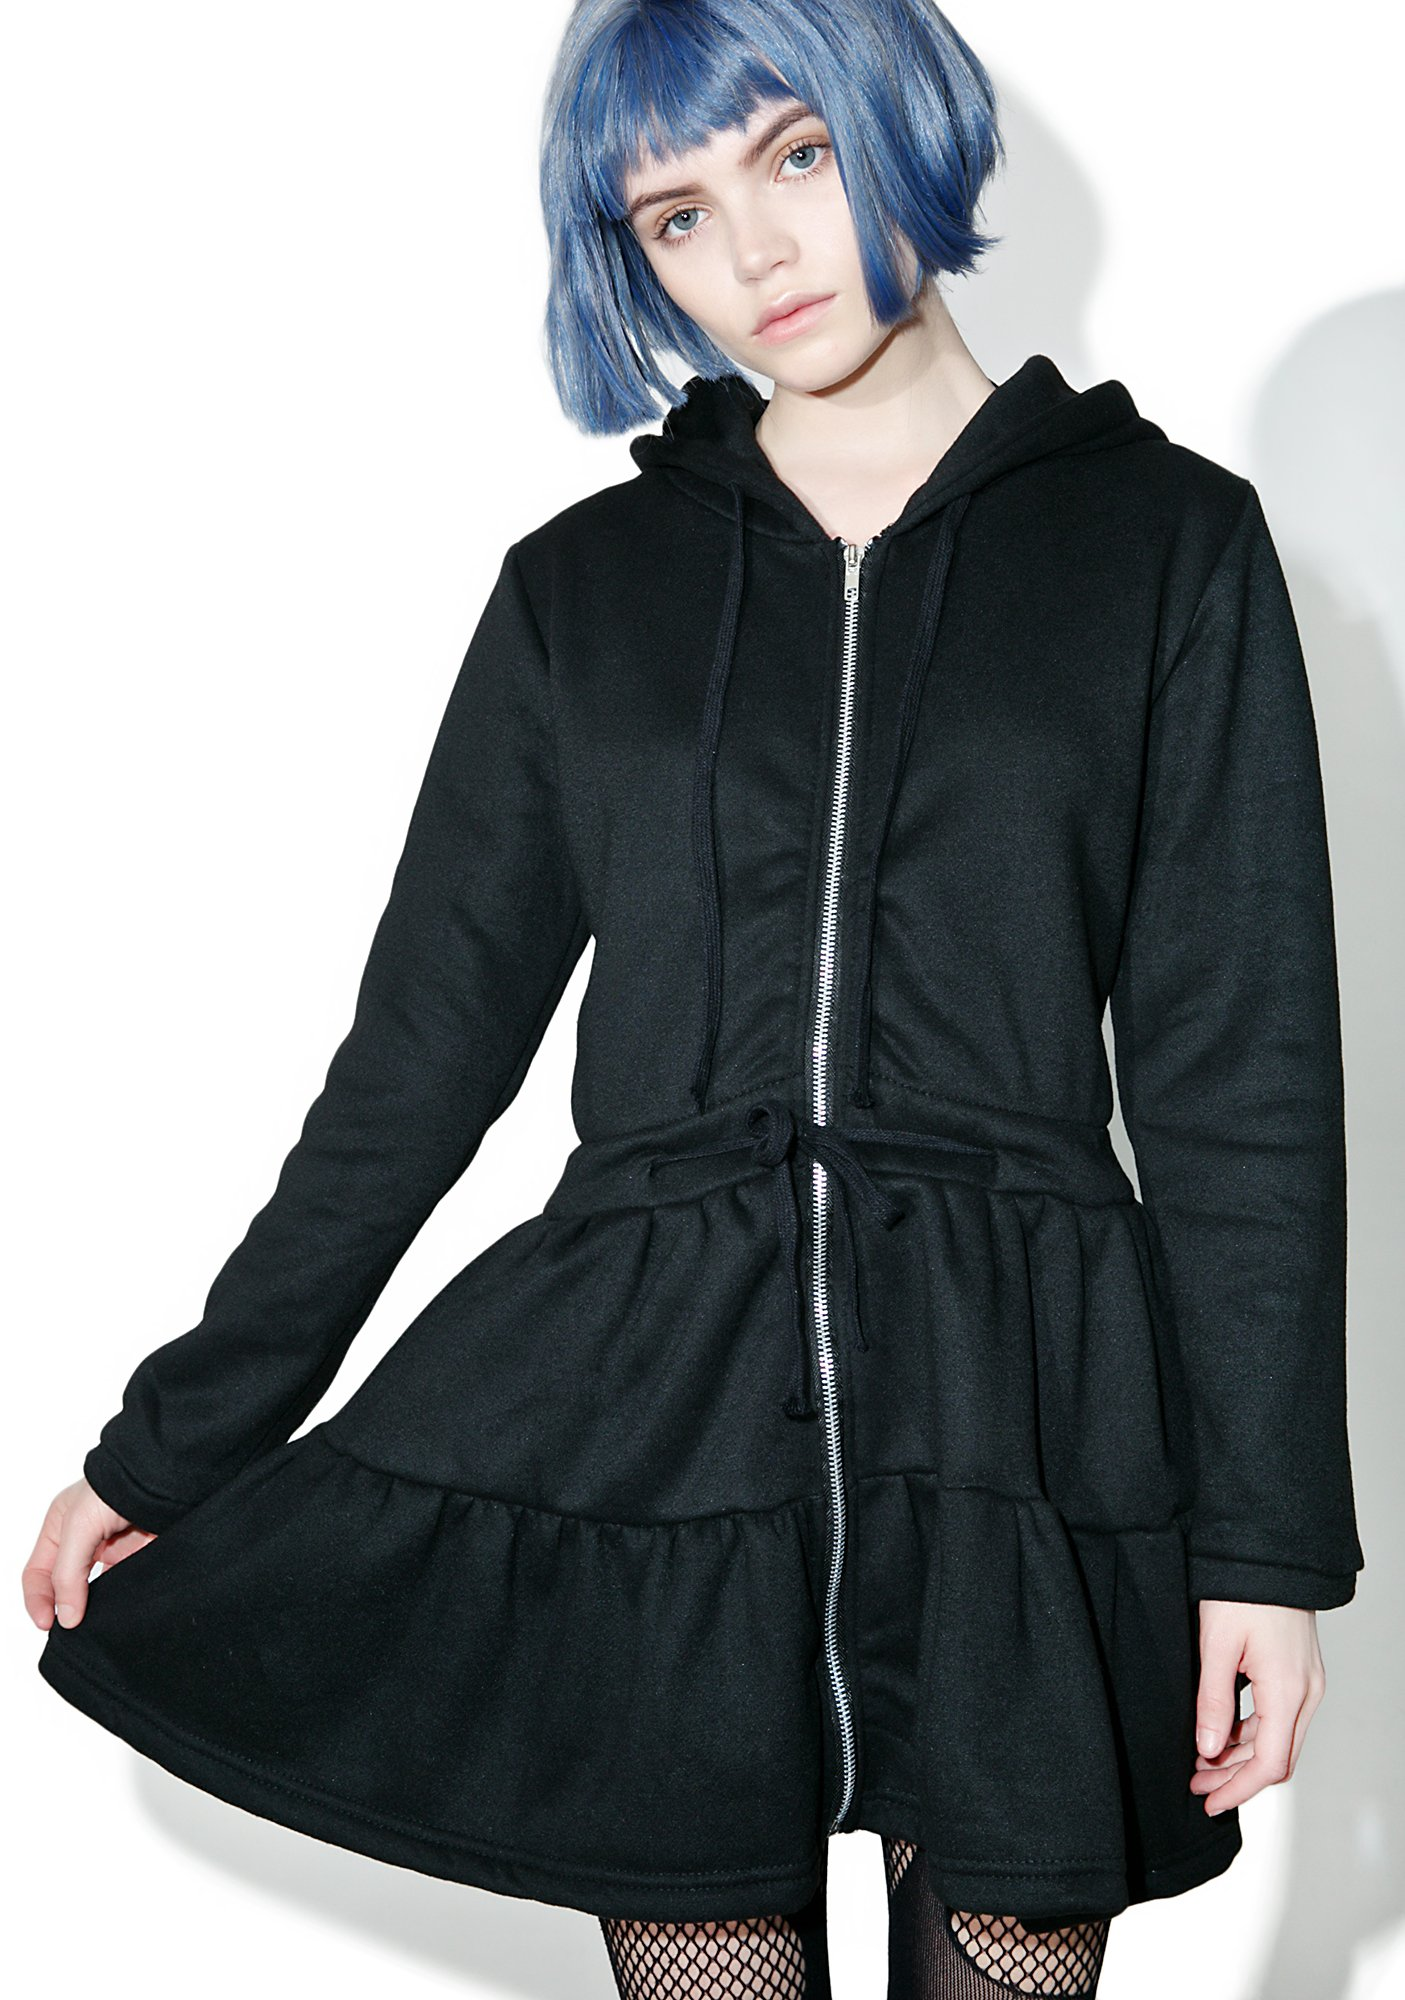 Bunny Ears Hood Dress